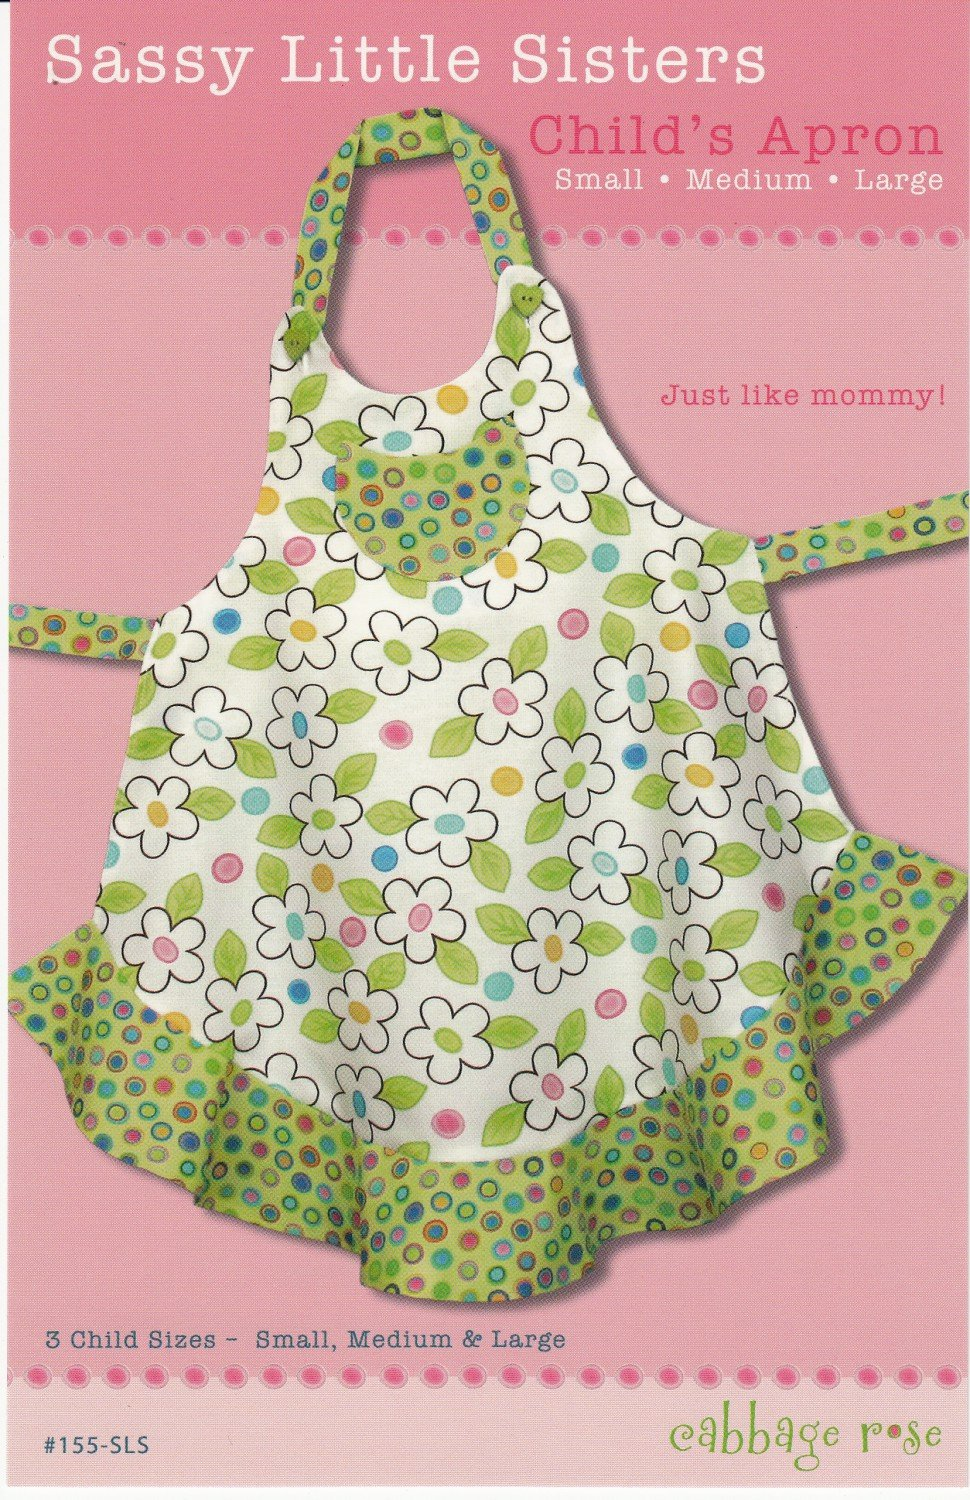 Sassy Little Sisters Child's Apron by Cottage Rose